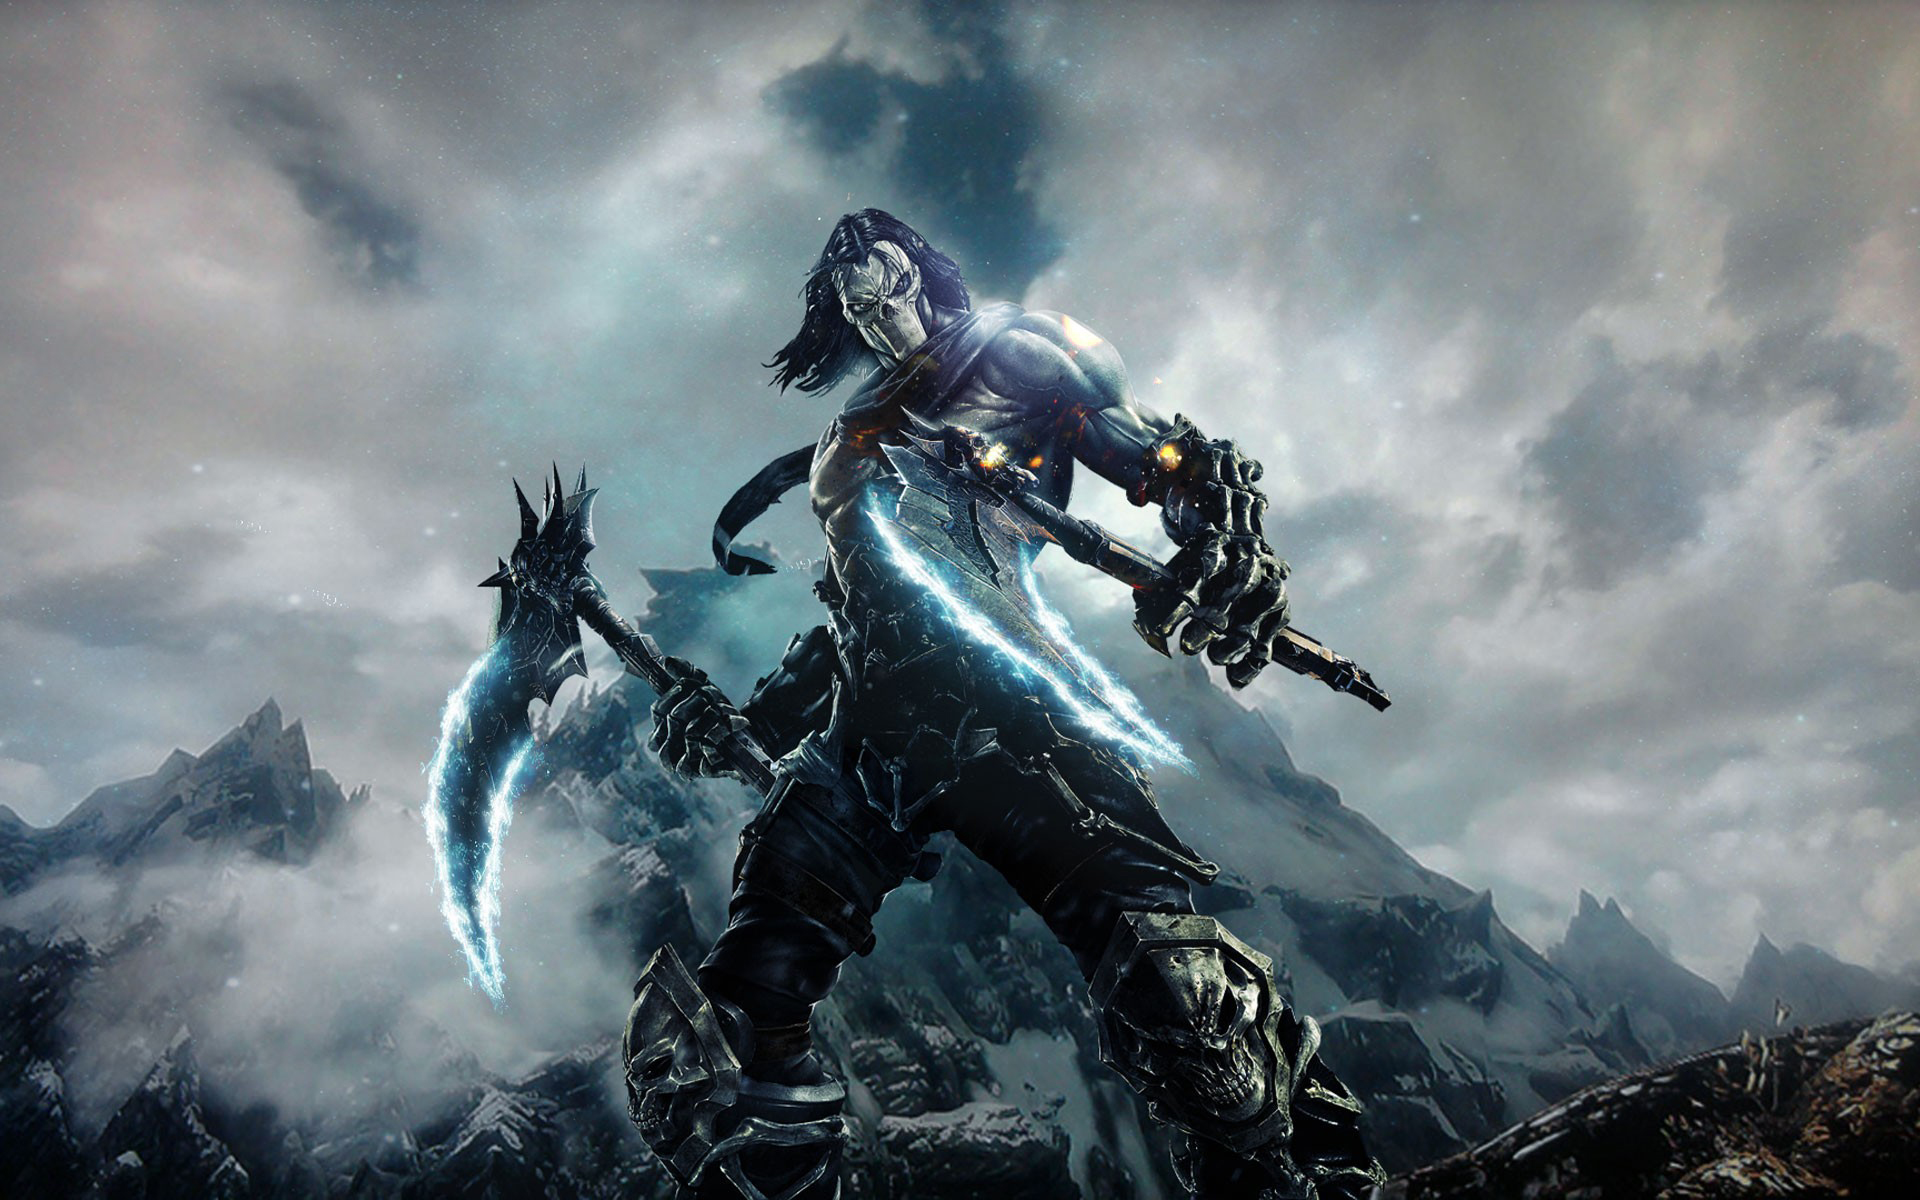 Darksiders 2 Character wallpapers Darksiders 2 Character stock 1920x1200